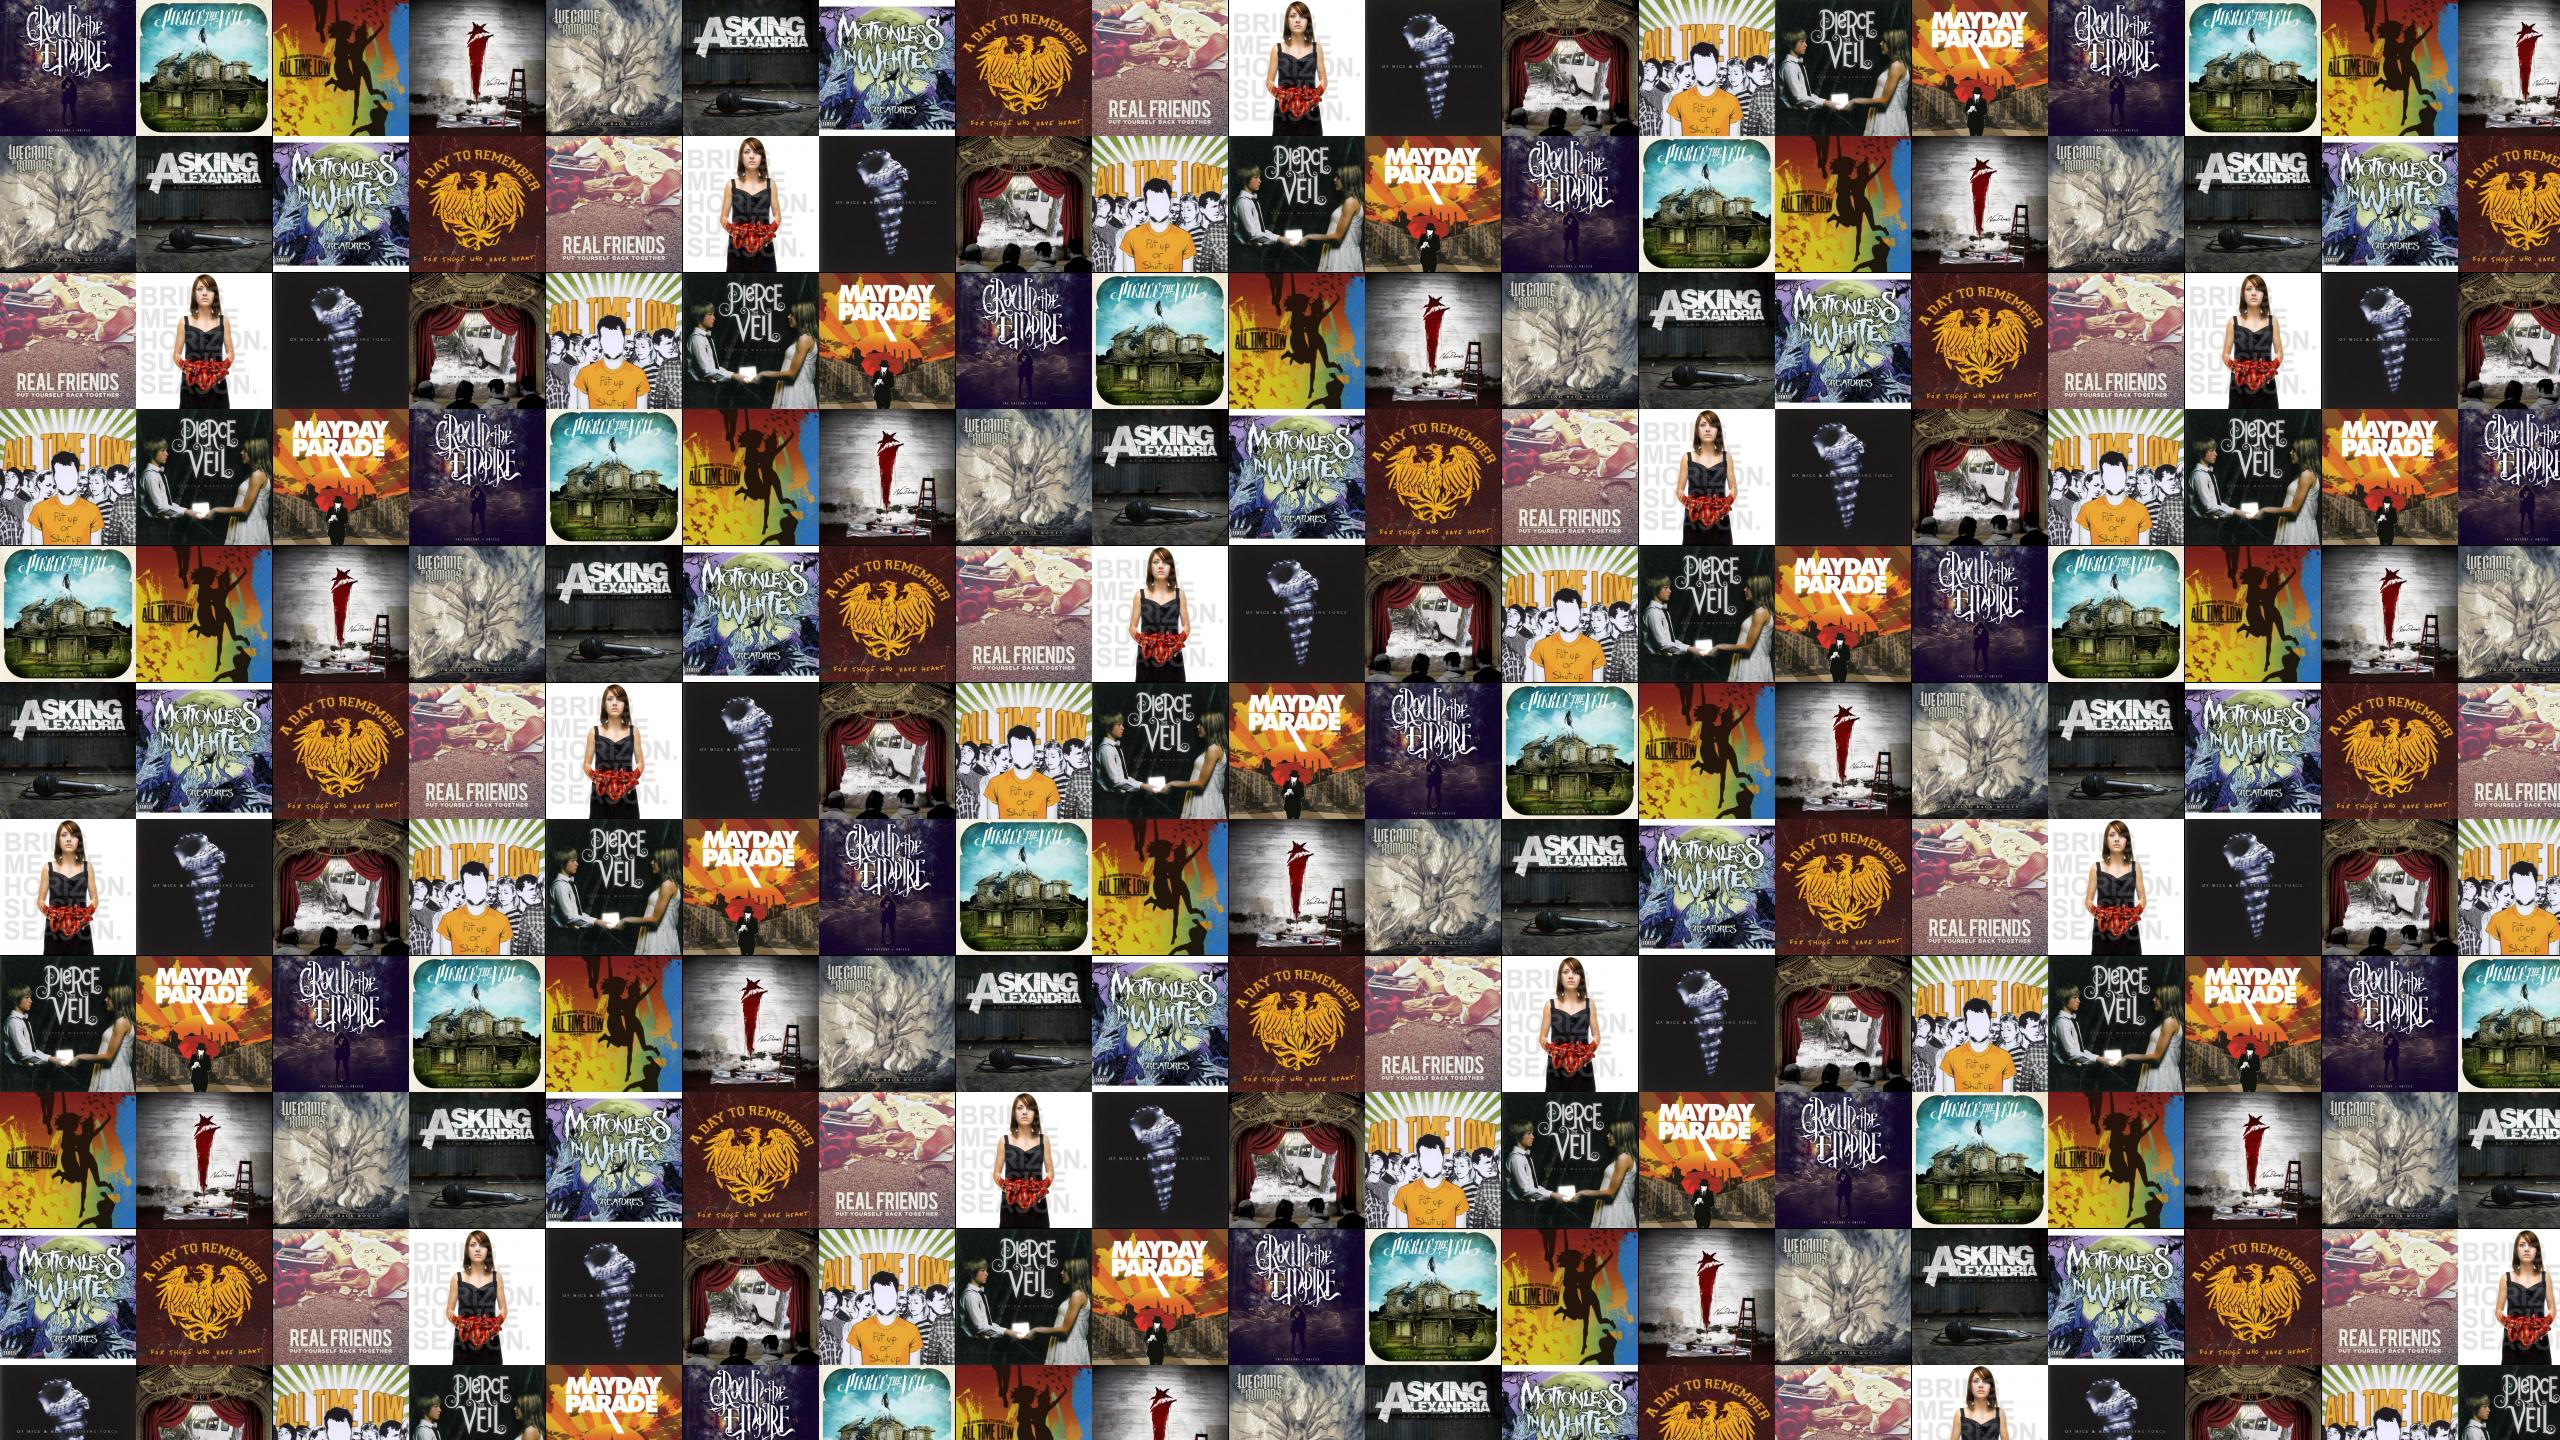 Crown Empire Fallout Pierce Veil Collide With Sky Wallpaper